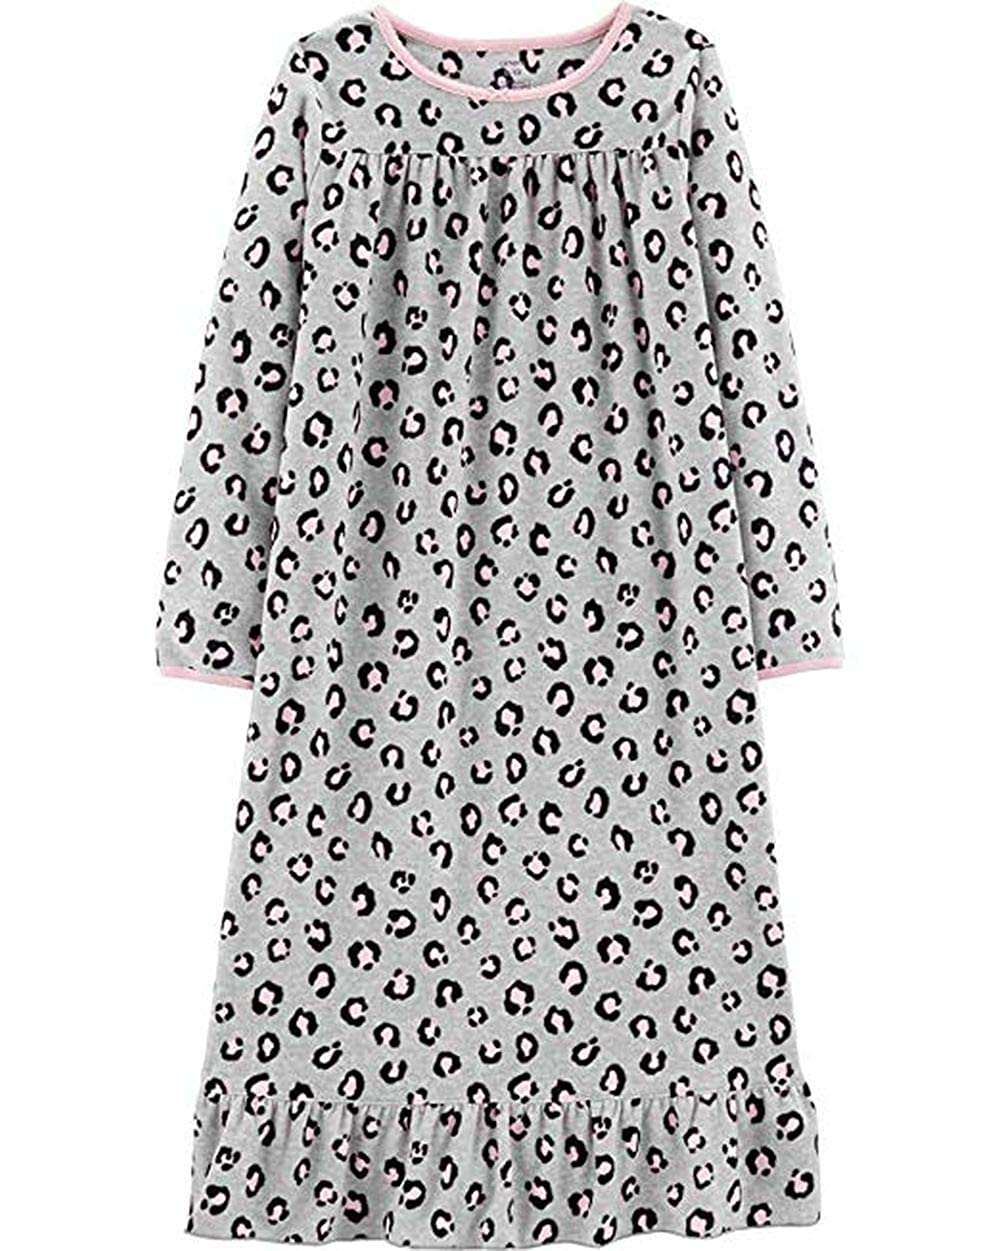 Gown Size 8-10 Carters Girls Gray and Pink Cheetah Print Fleece Nightgown